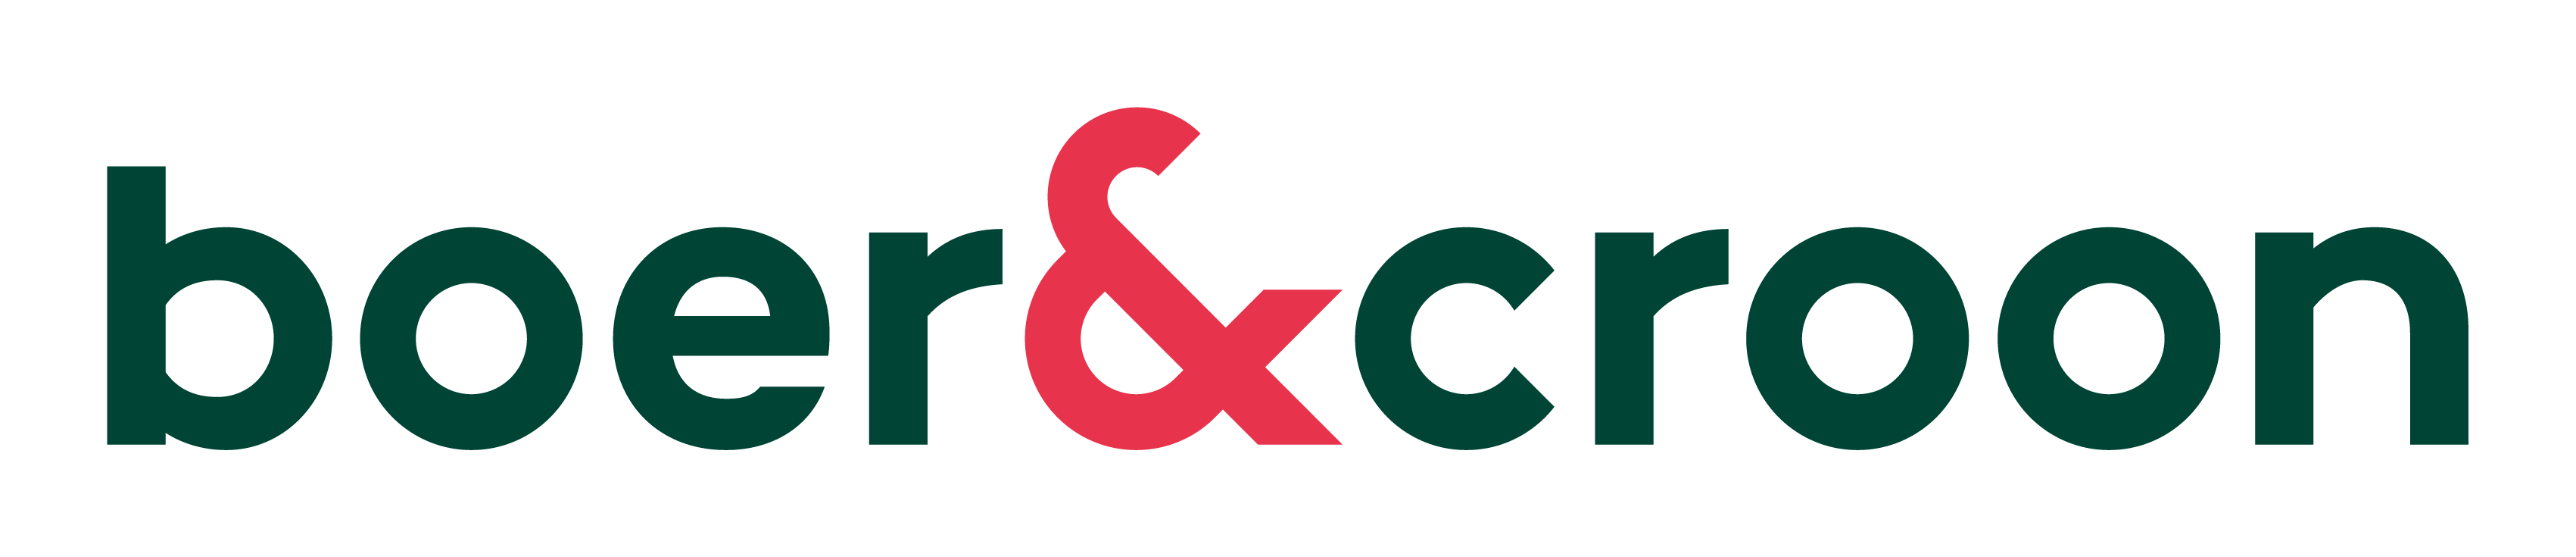 Boer & Croon logo